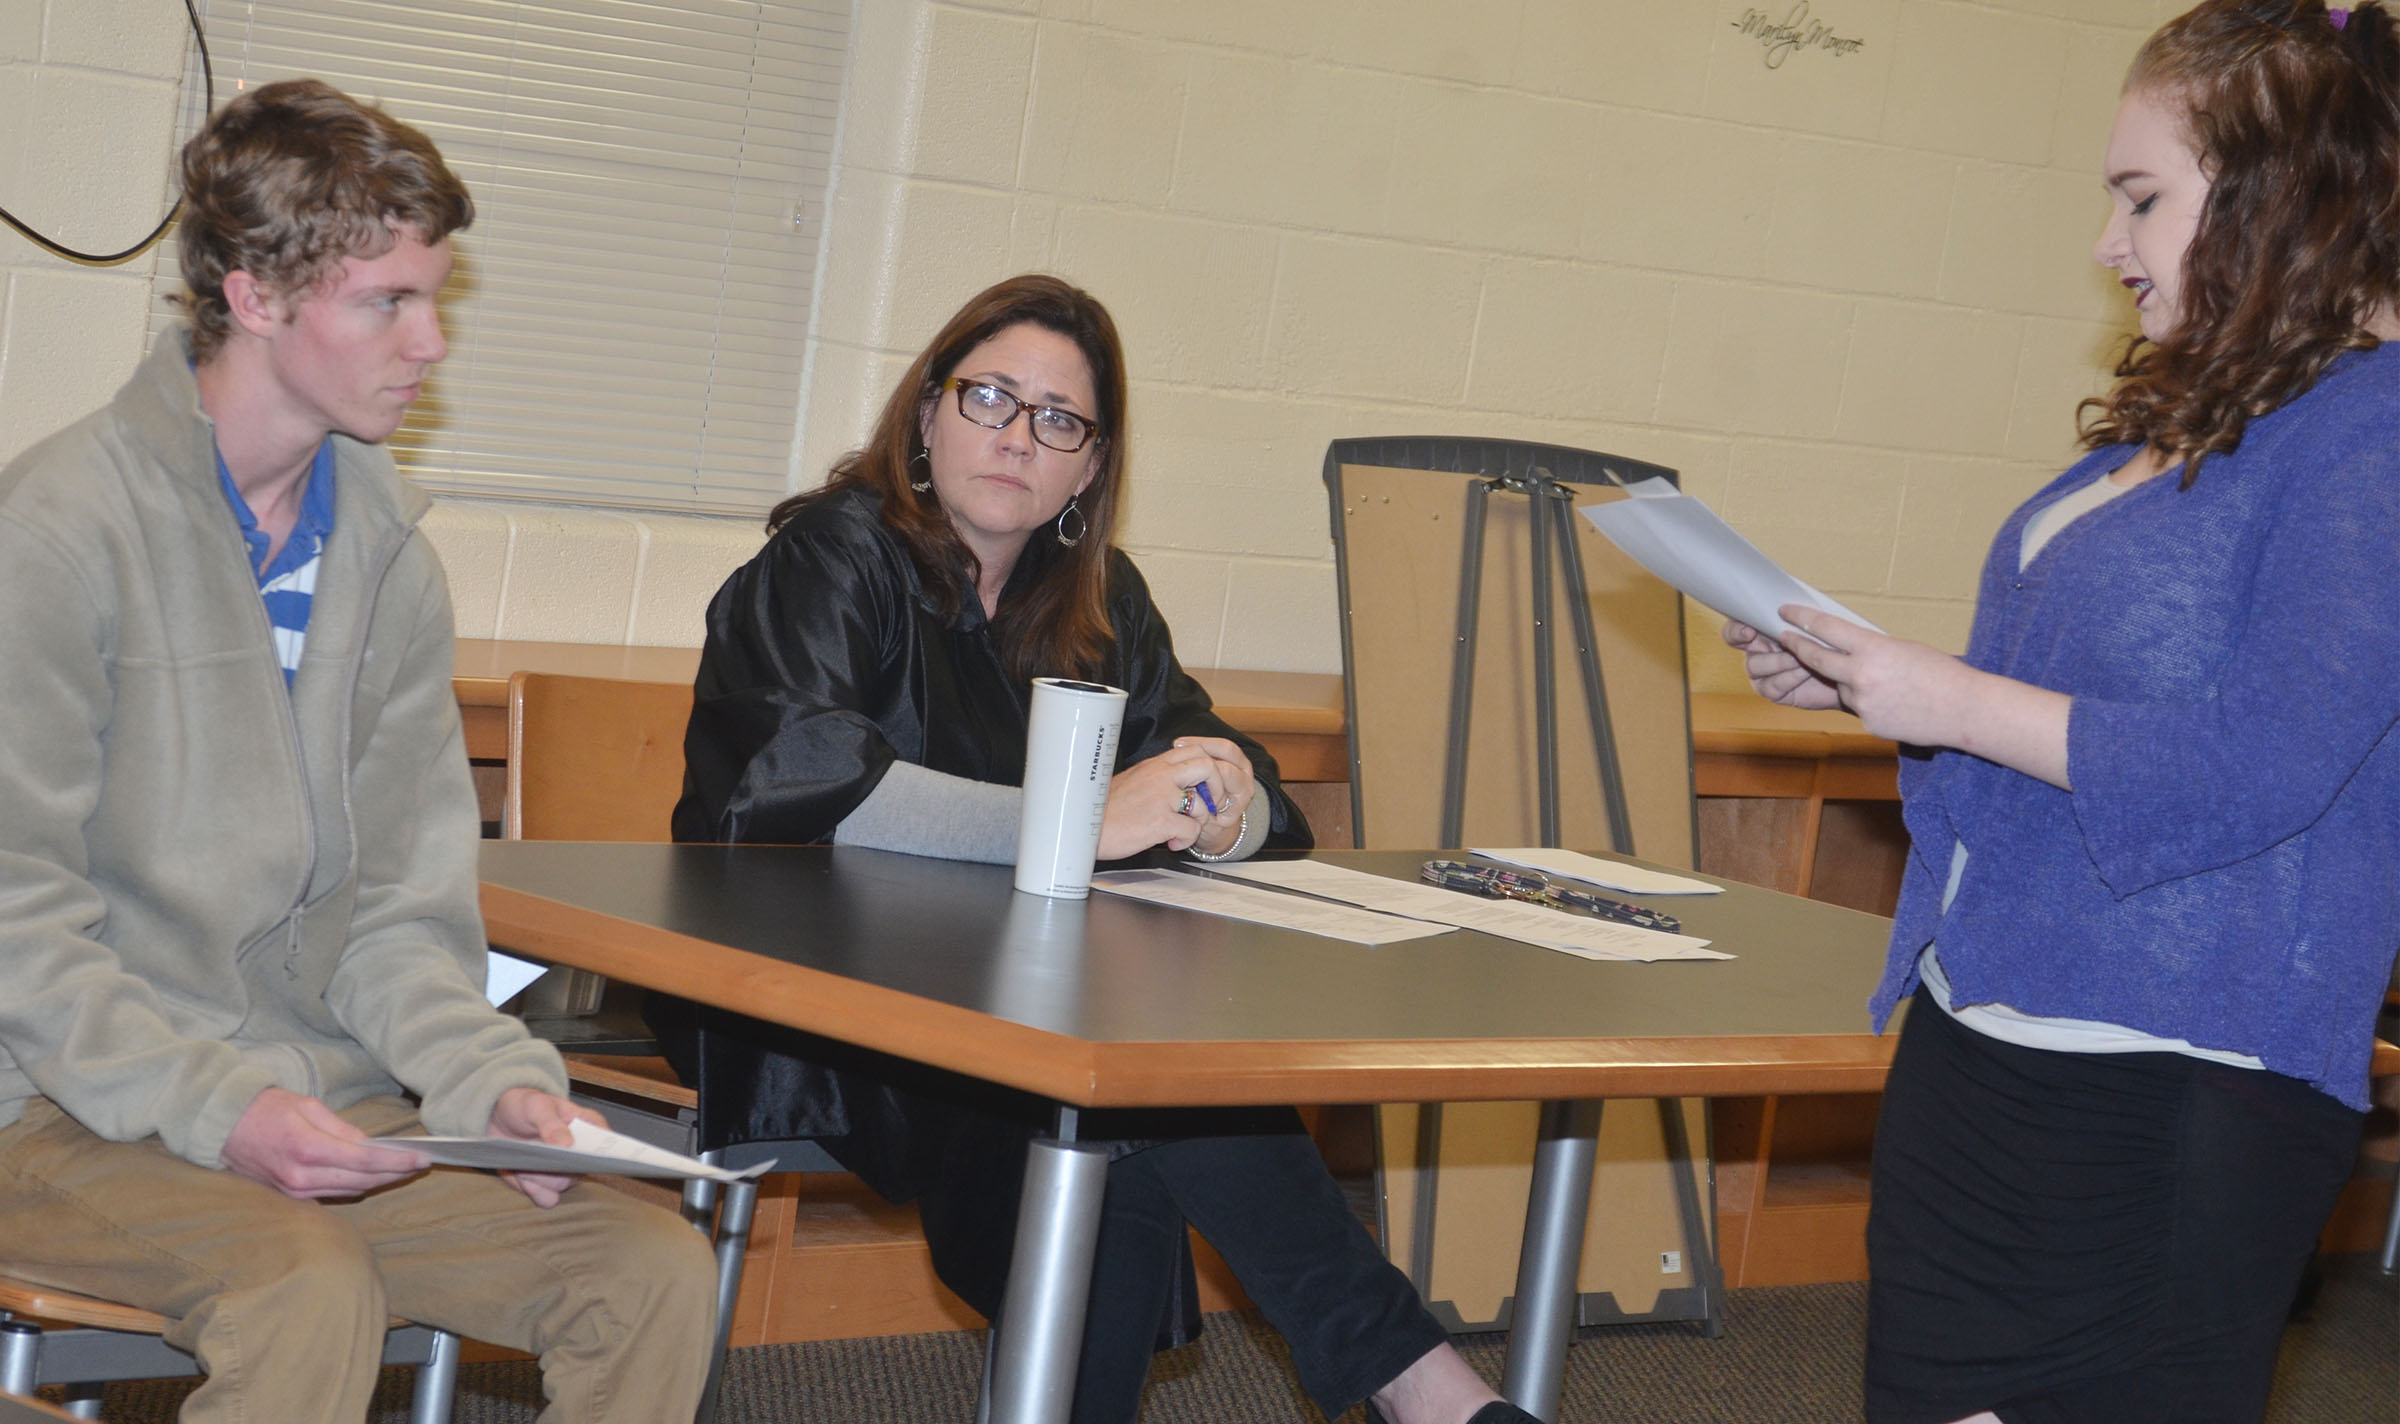 CHS sophomore Leslie McKenzie, at right, portraying a defense attorney, questions classmate Payton Reynolds, a witness in the case, as judge Susan Dabney listens.